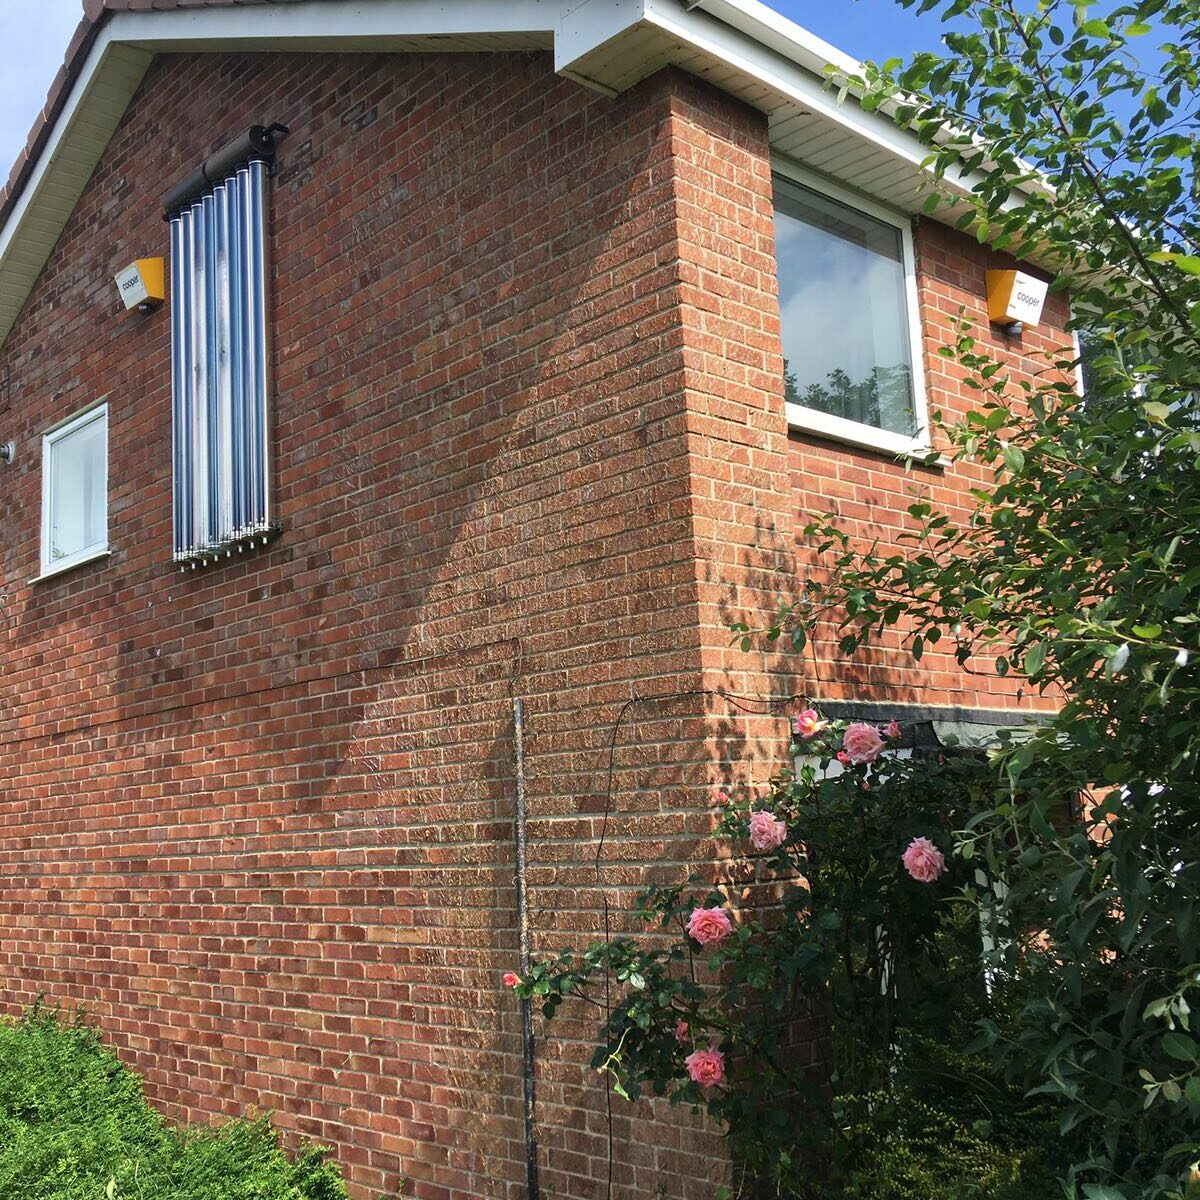 ivy removal from walls and guttering of a house